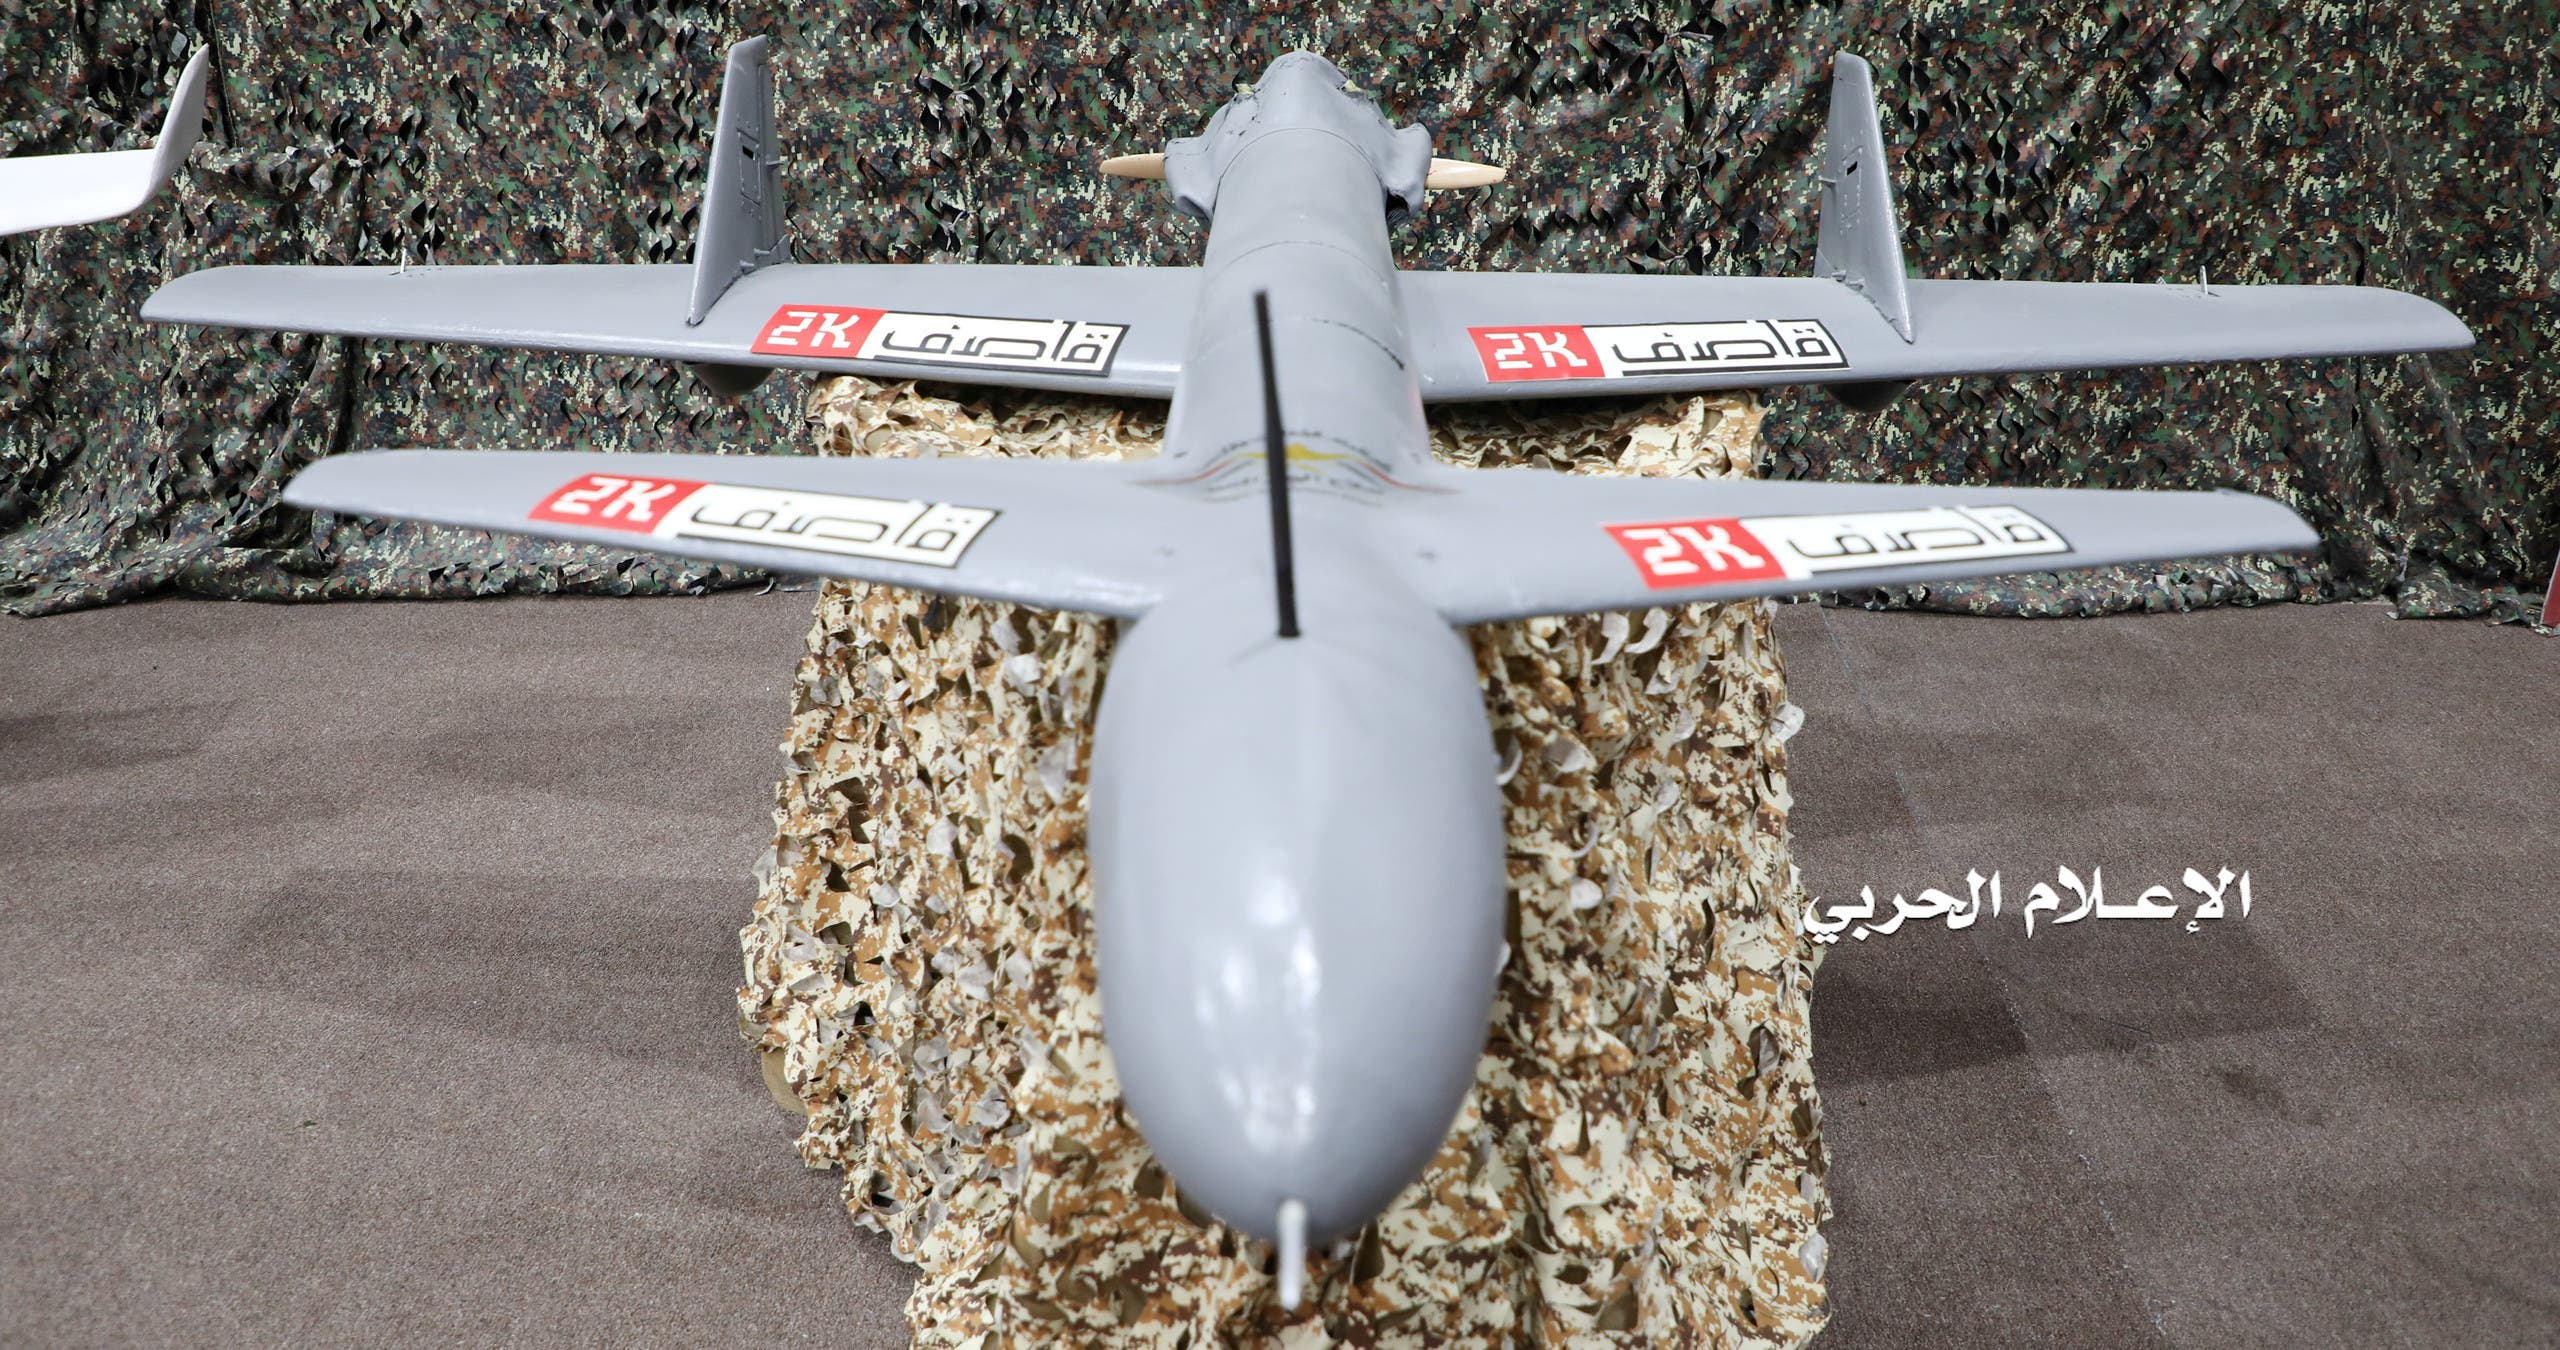 A drone aircraft is put on display at an exhibition at an unidentified location in Yemen in this undated handout photo released by the Houthi Media Office July 9, 2019.